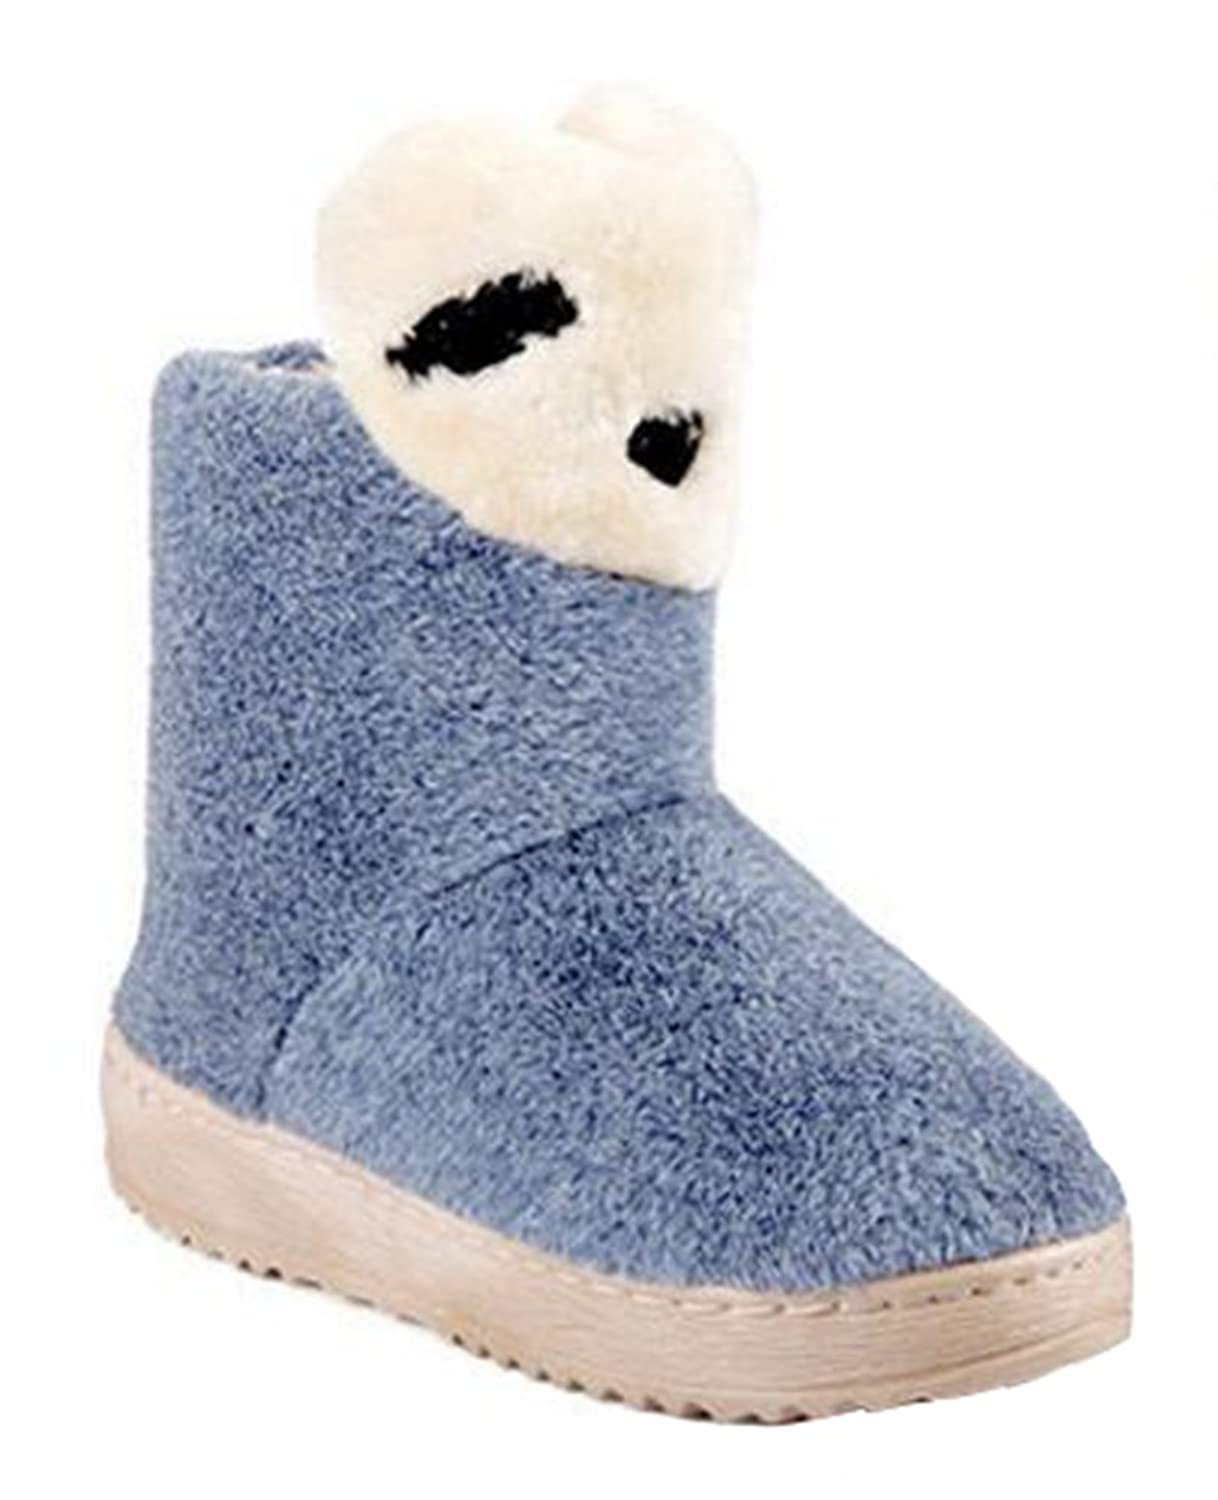 CHFSO Women's Cute Bear Solid Furry Fully Fur Lined Pull On Low Heel Platform Ankle High Warm Winter Snow Boots